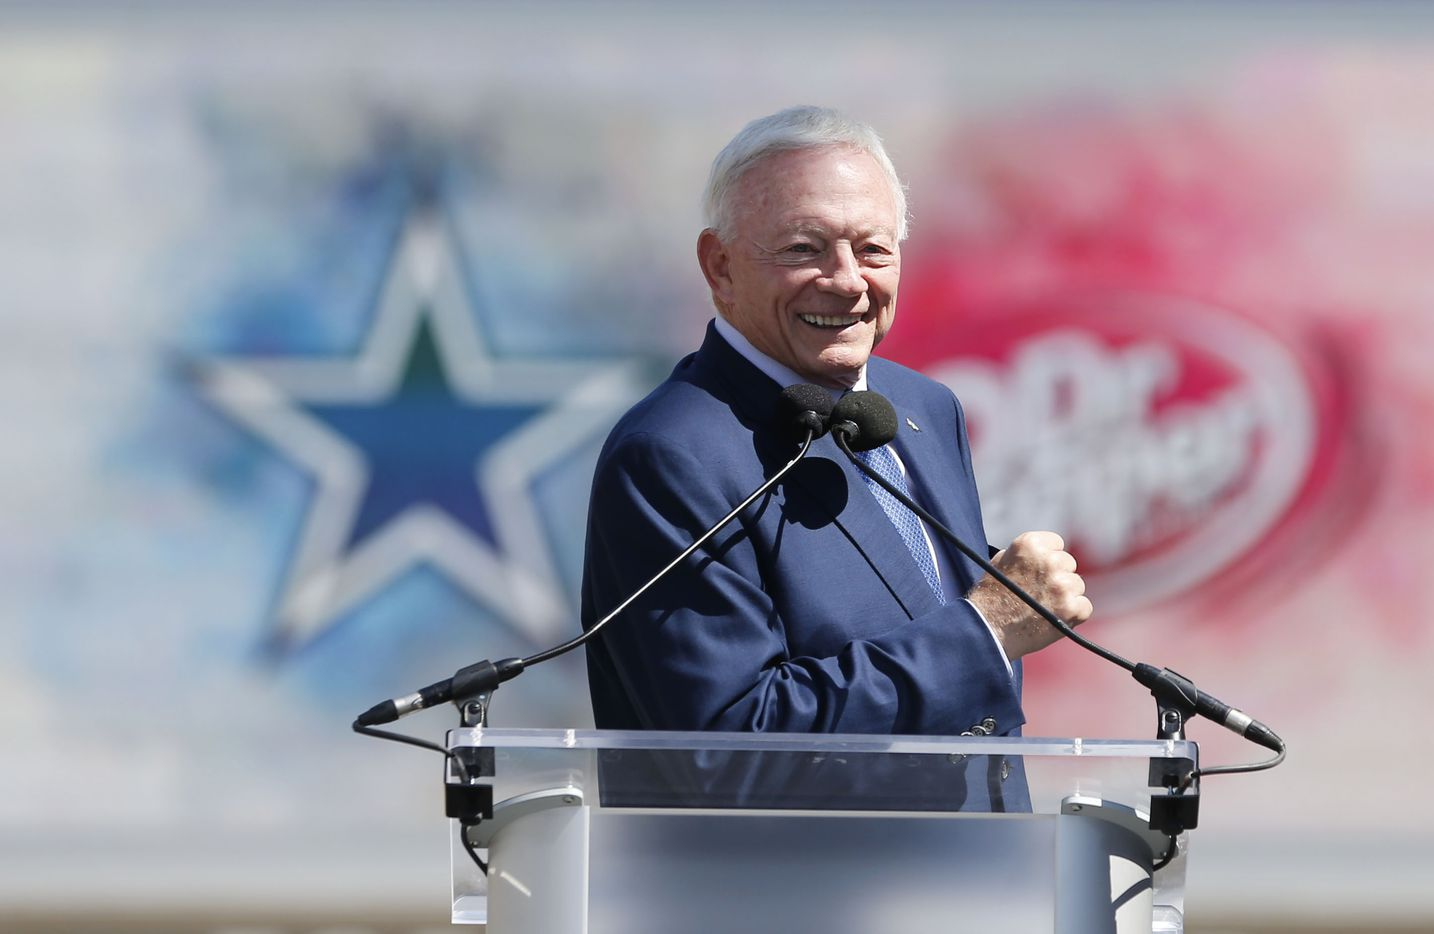 Dallas Cowboys owner and general manager Jerry Jones speaks to the crowd during the Ring of Honor Walk unveiling ceremony at The Star in Frisco on  Aug. 21, 2017.